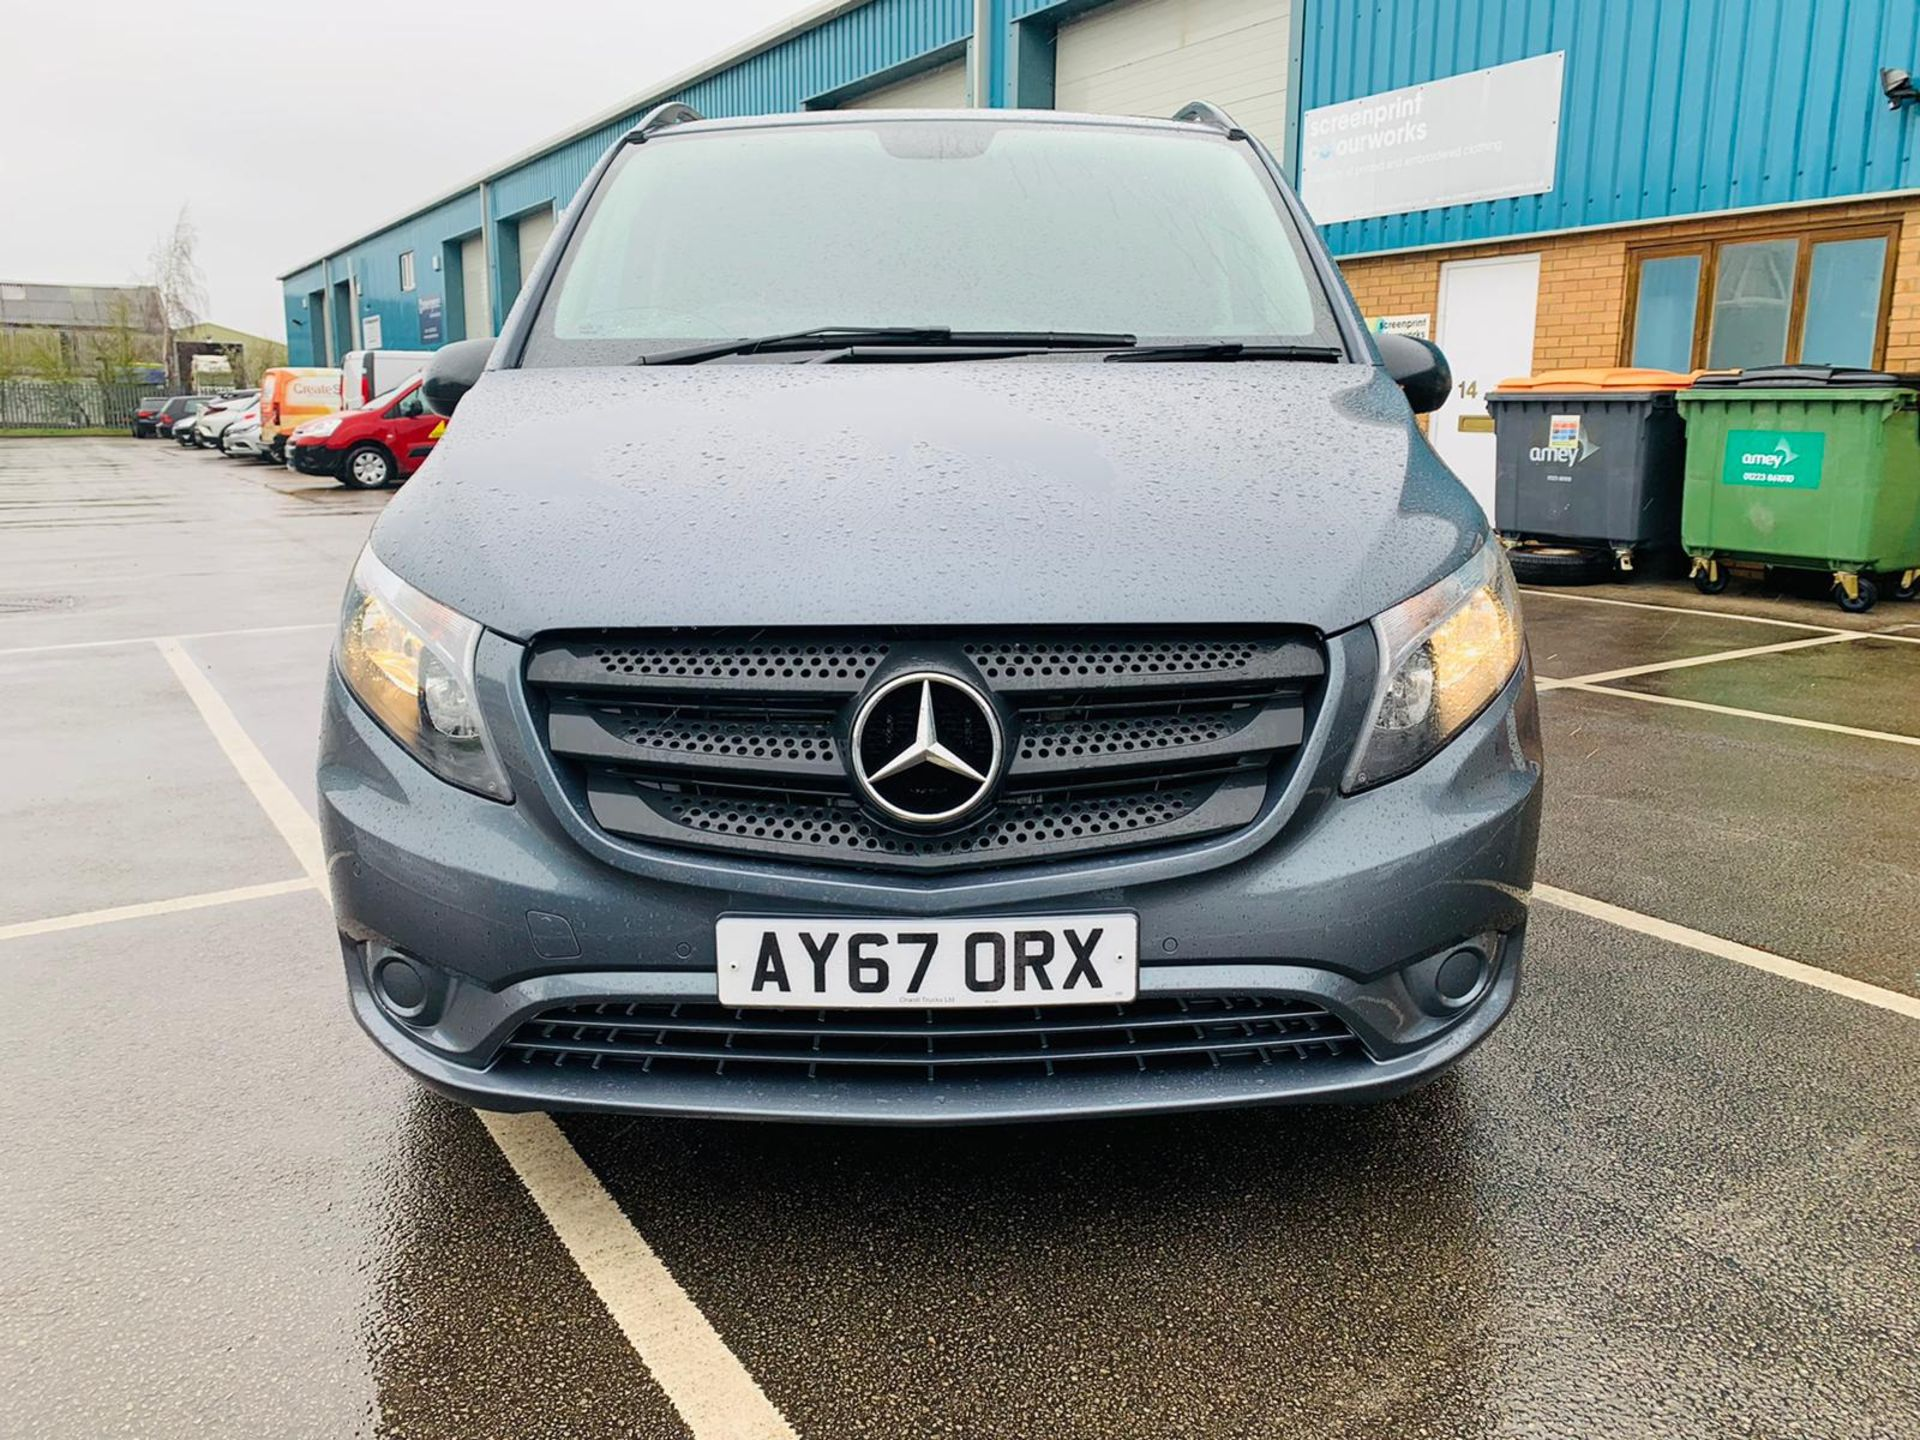 Mercedes Vito 114 Bluetec Dualiner/Crew Van - Auto - Air Con - 2018 Model- 1 Owner From New - Image 7 of 30